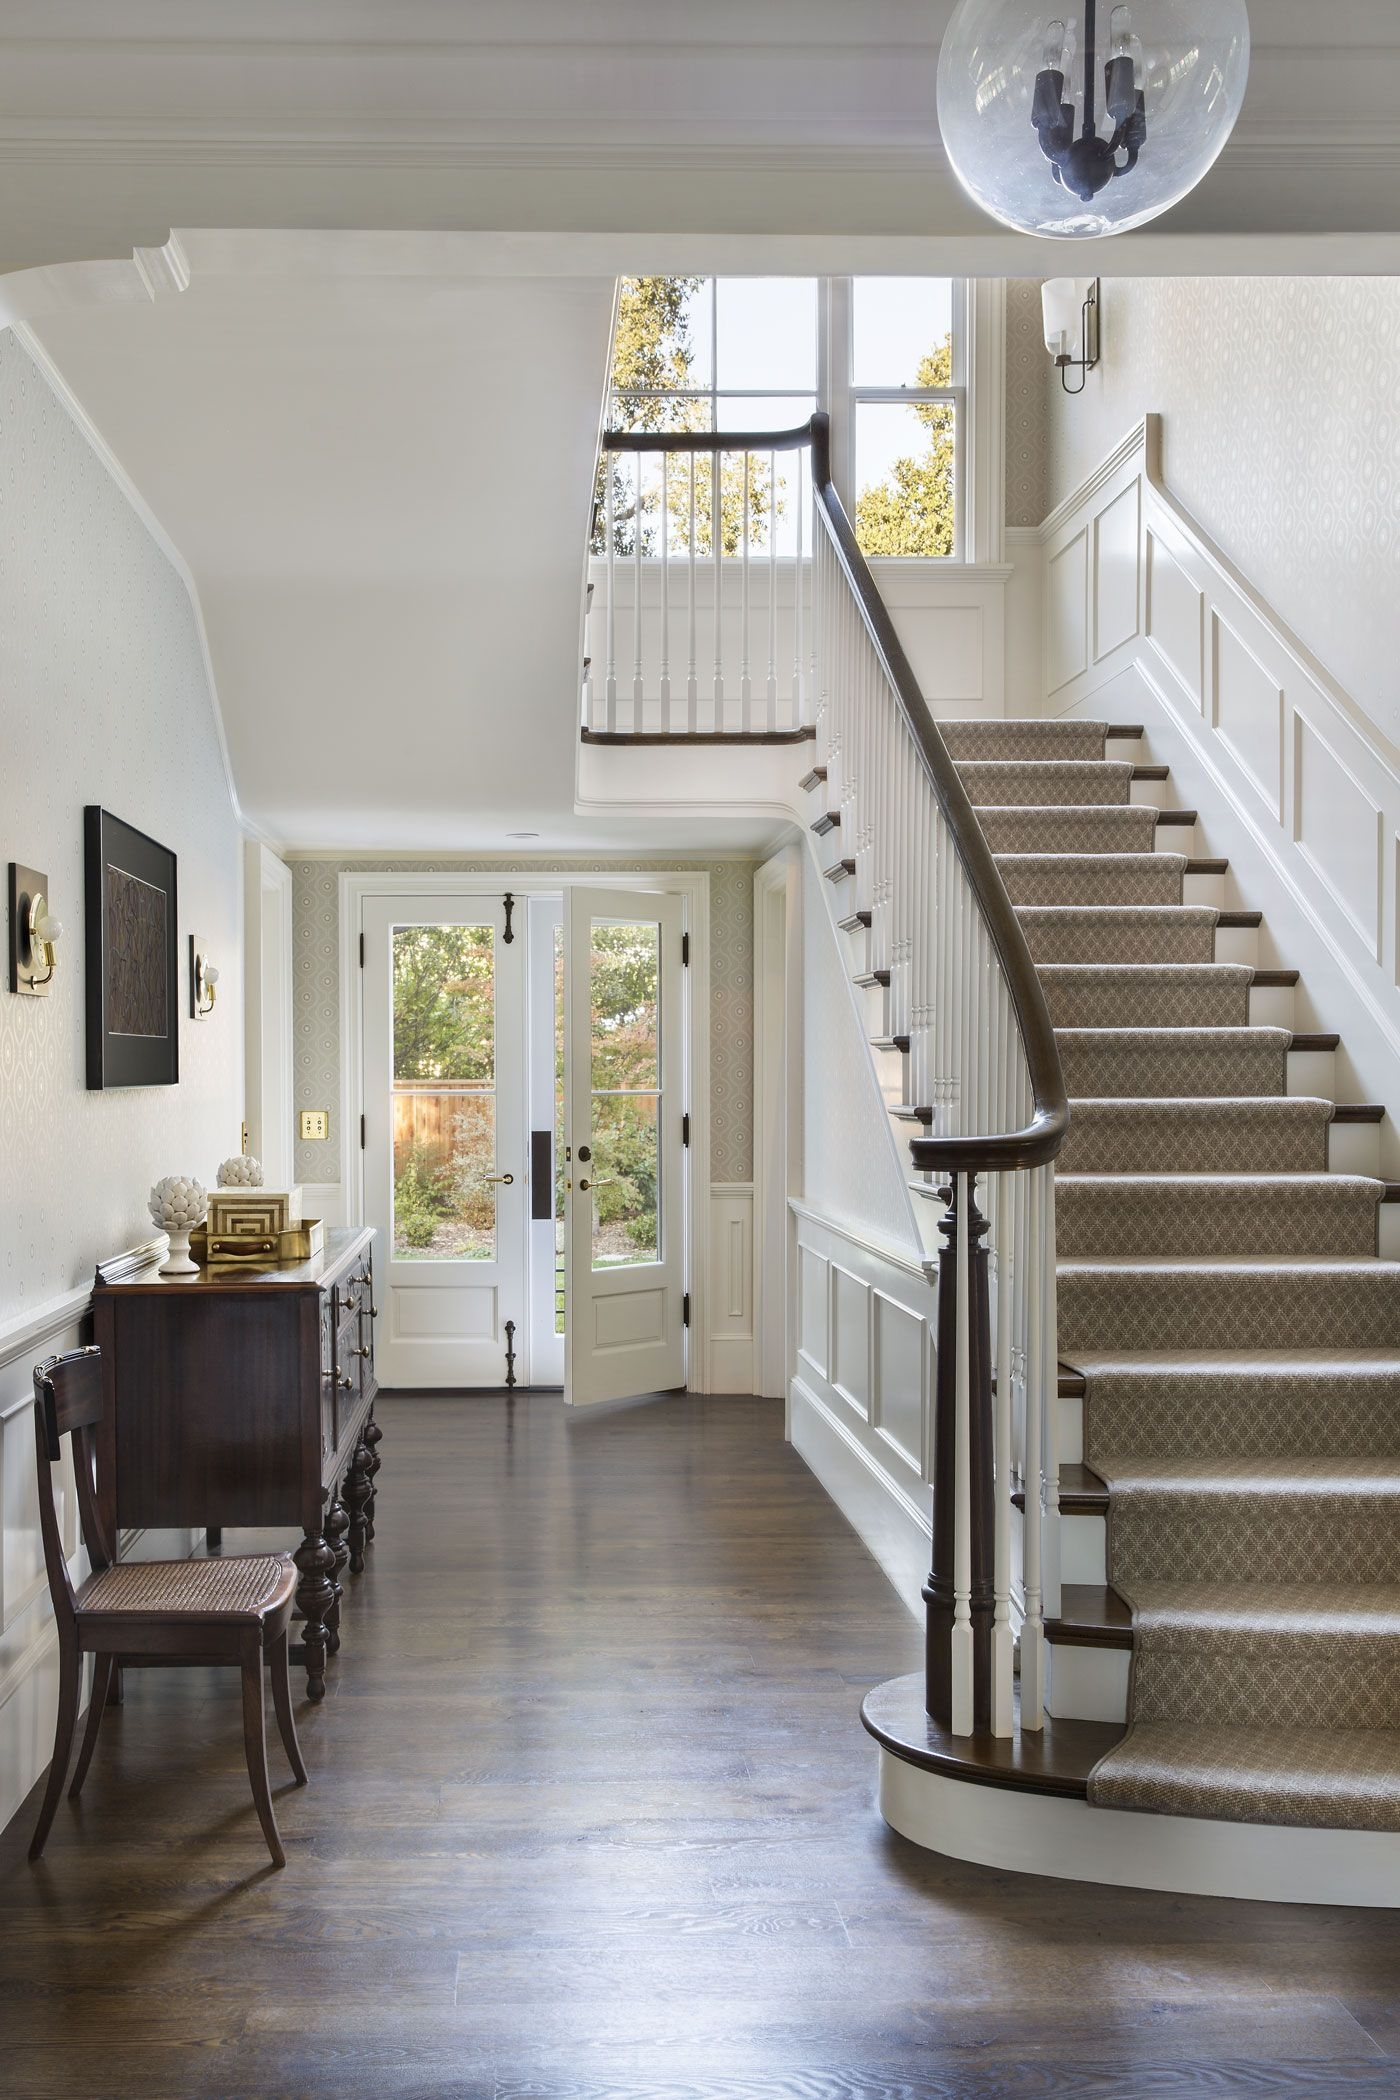 25 Stunning Carpeted Staircase Ideas Most Beautiful Staircase | Stairs In Home Design | Wall | Luxury | Creative | Home Out | Ultra Modern